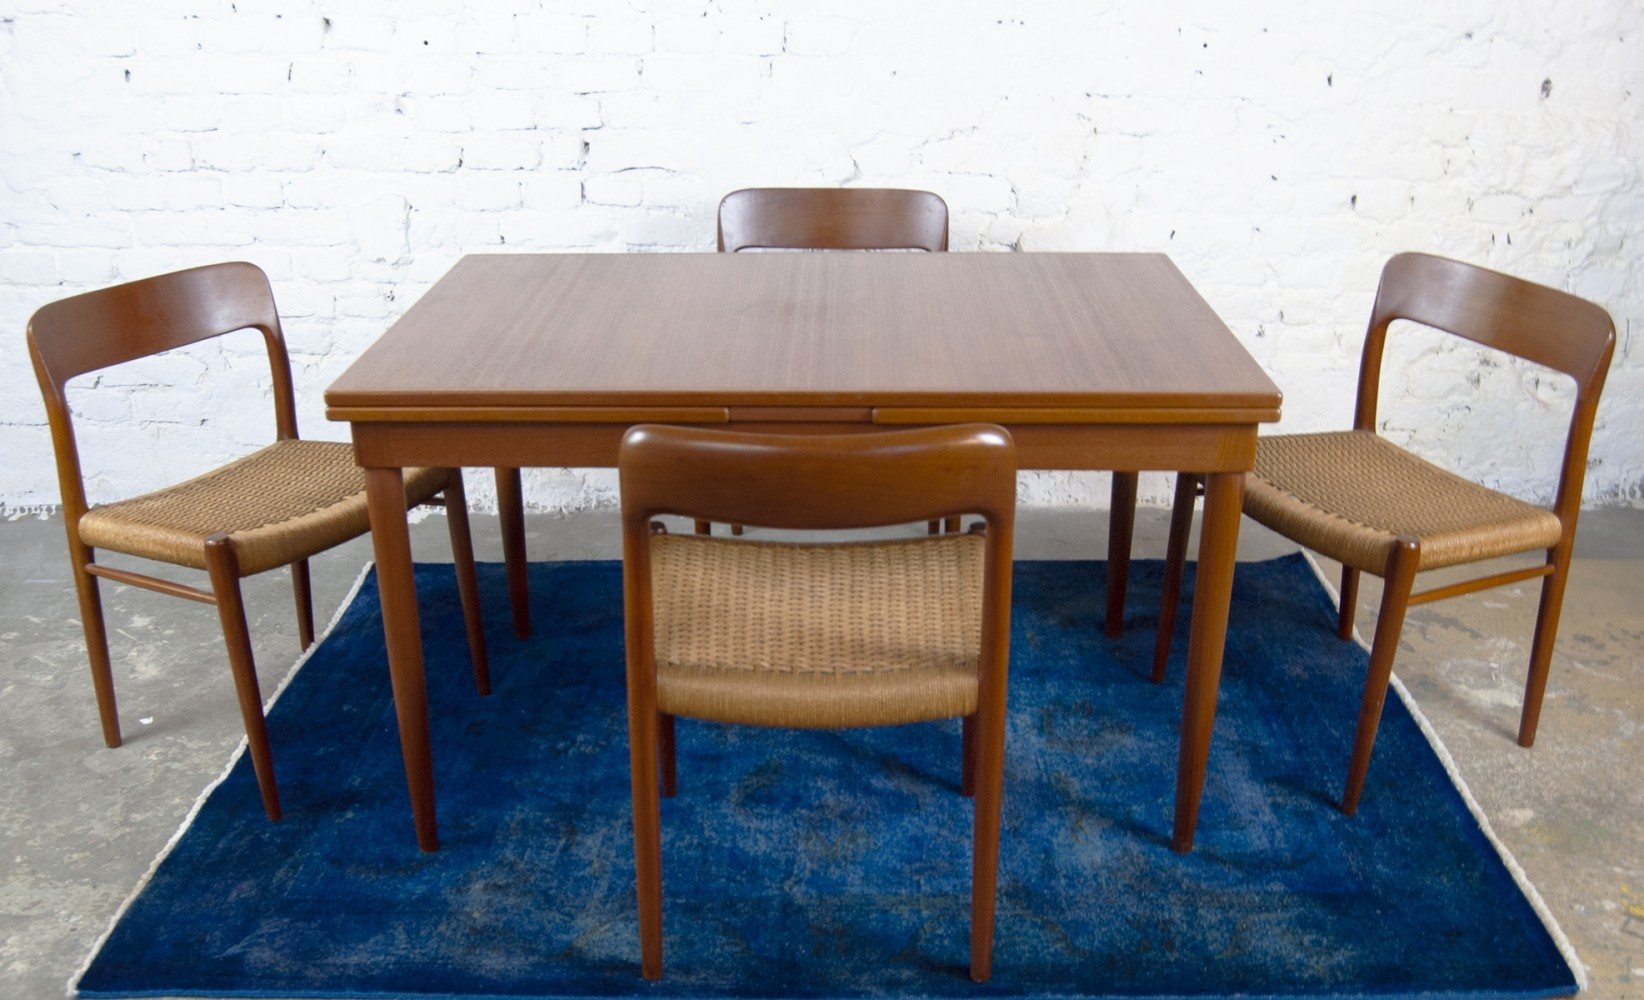 Model 75 Dining Set with extendable table by Niels O. Møller for J.L. Møllers, 1960s